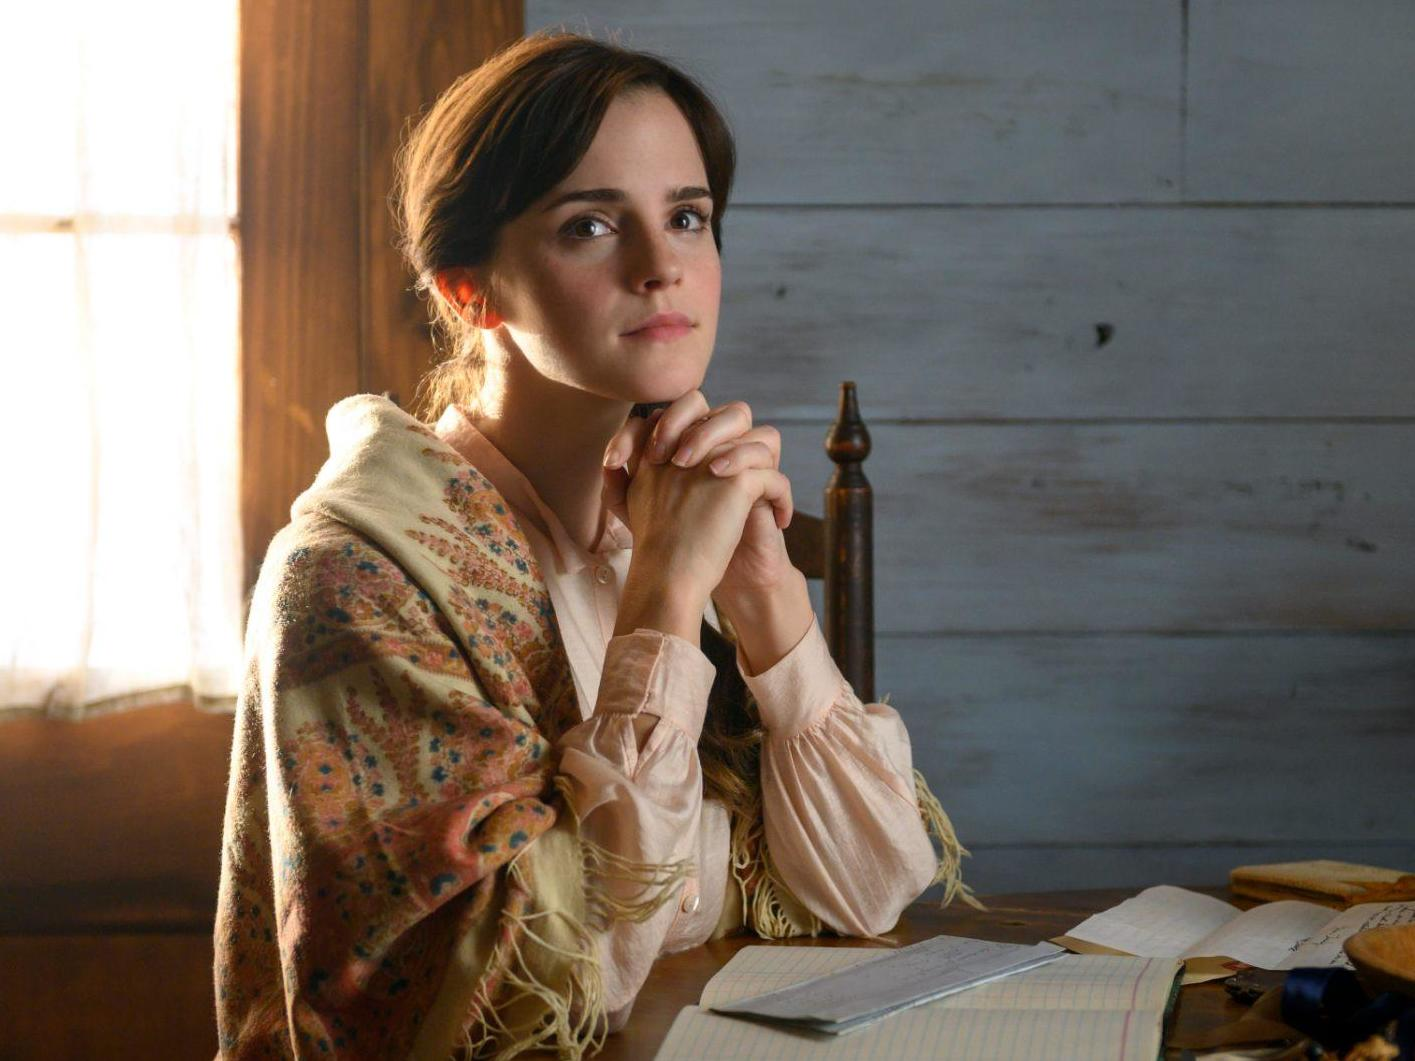 Emma Watson Is A Brilliant Actor Let S Stop Pretending She Isn T The Independent The Independent